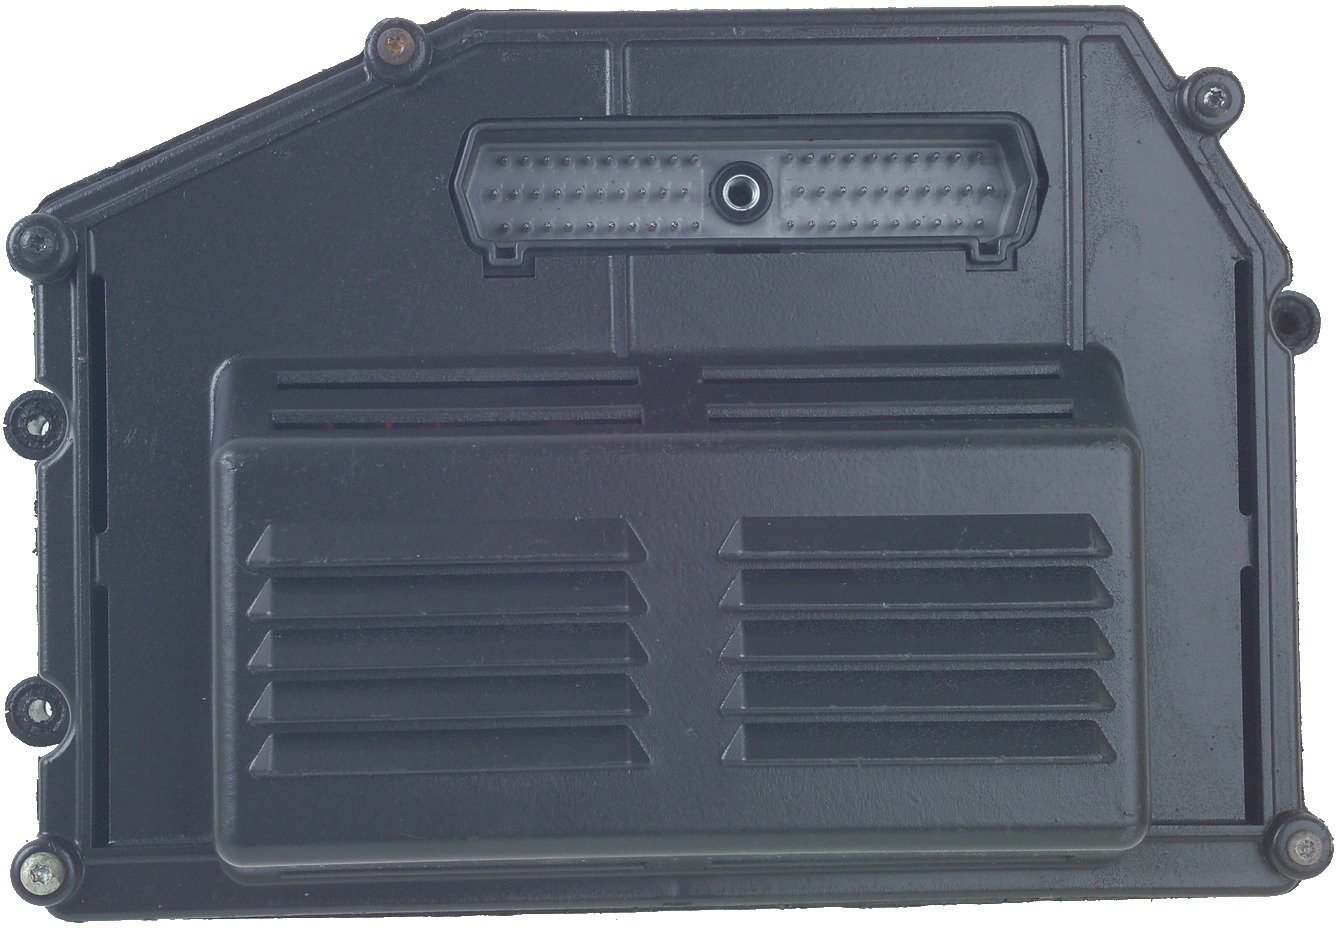 Cardone 79-8350 Remanufactured Chrysler Computer A1 Cardone 79-8350-AA1